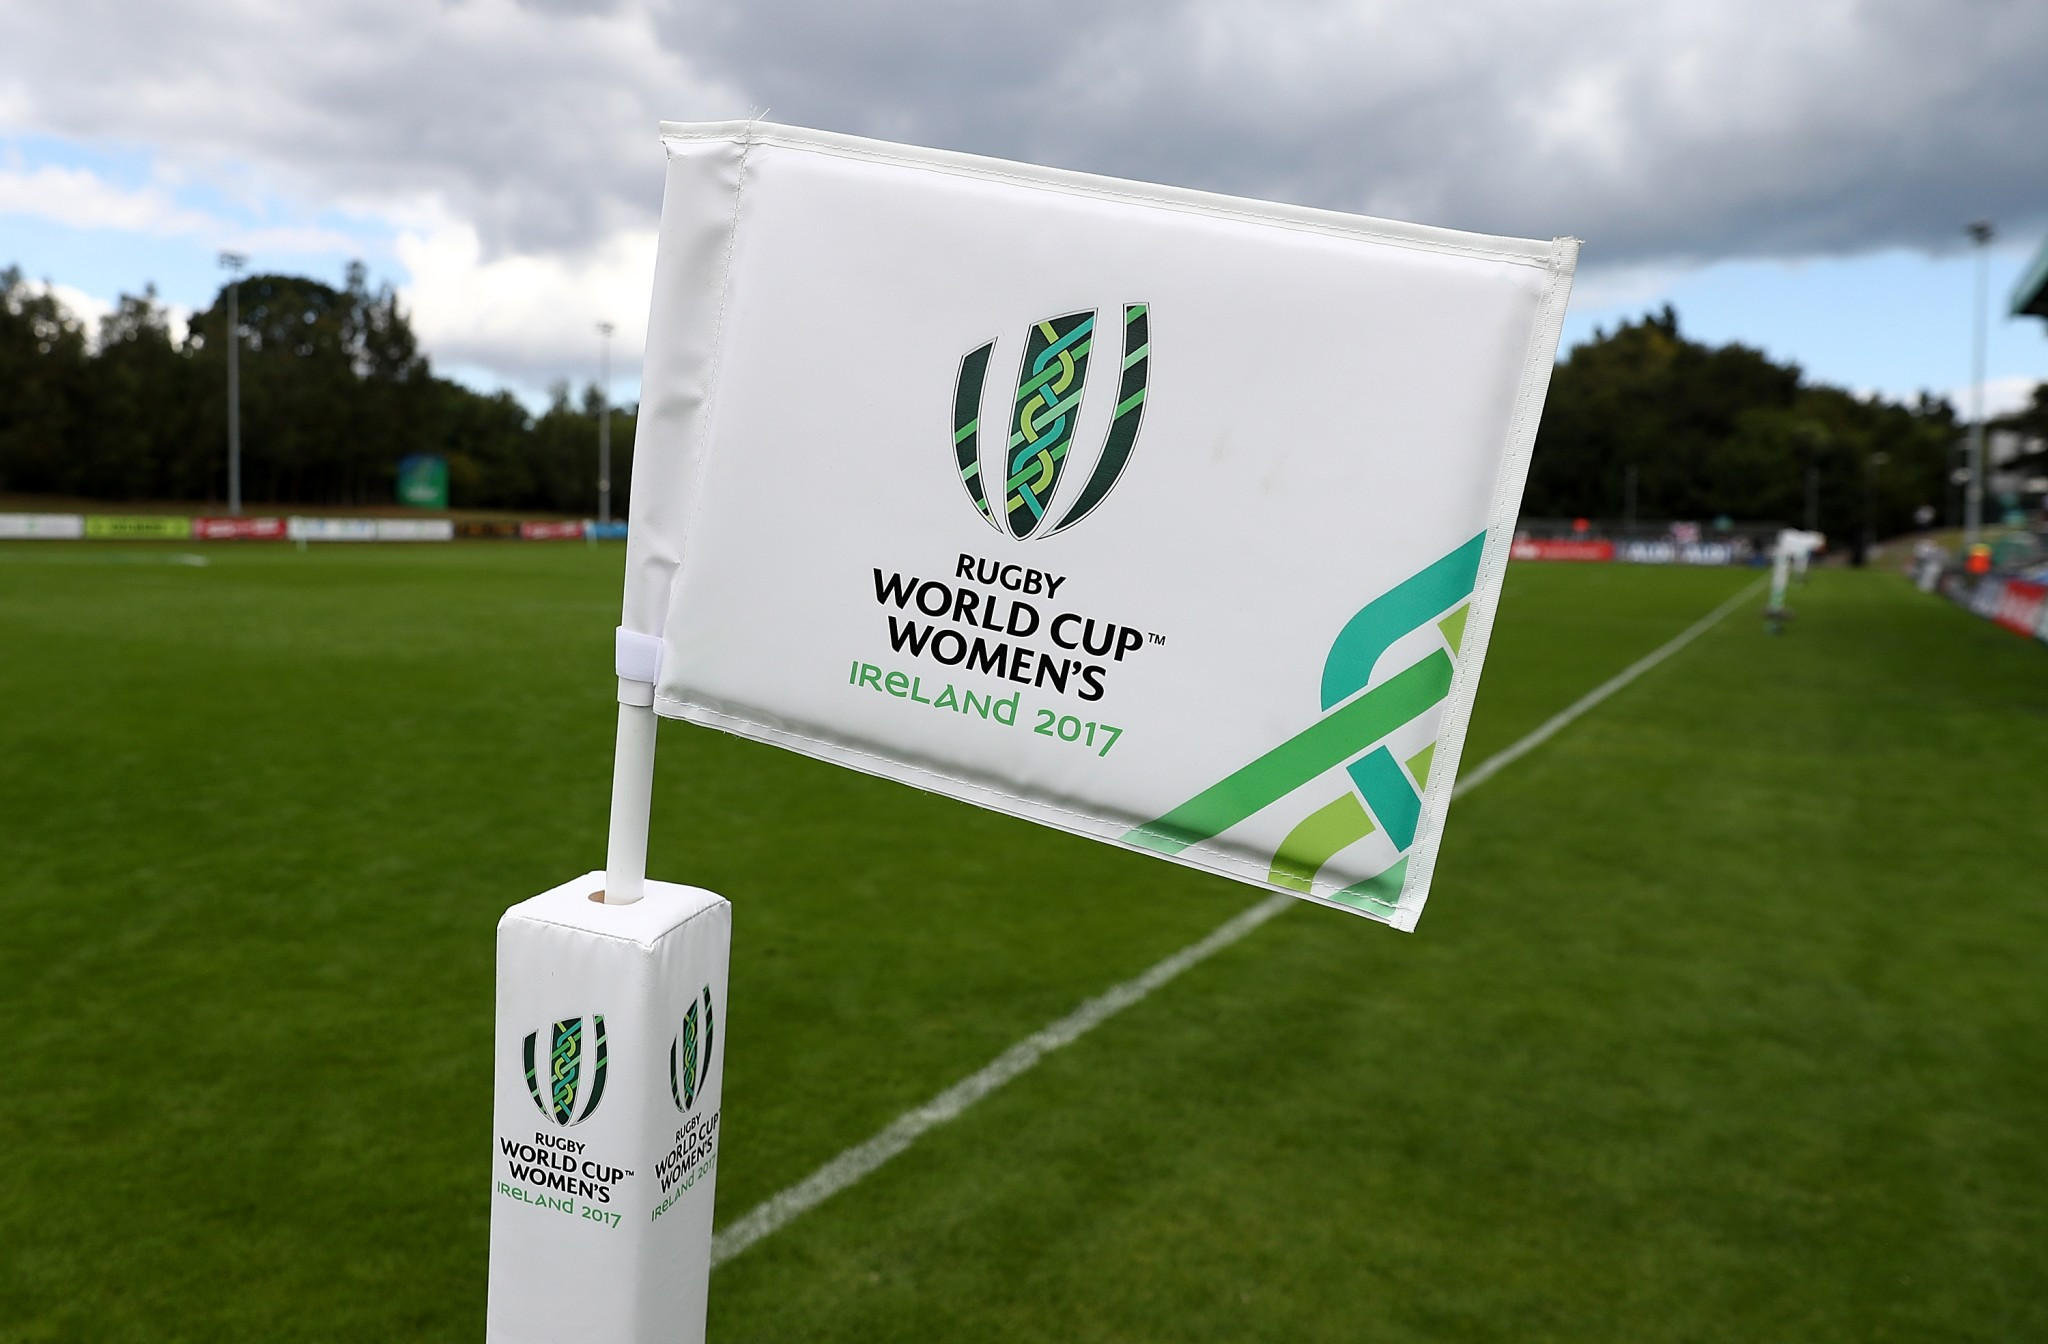 World Rugby implement anti-corruption strategy for 2017 Women's World Cup